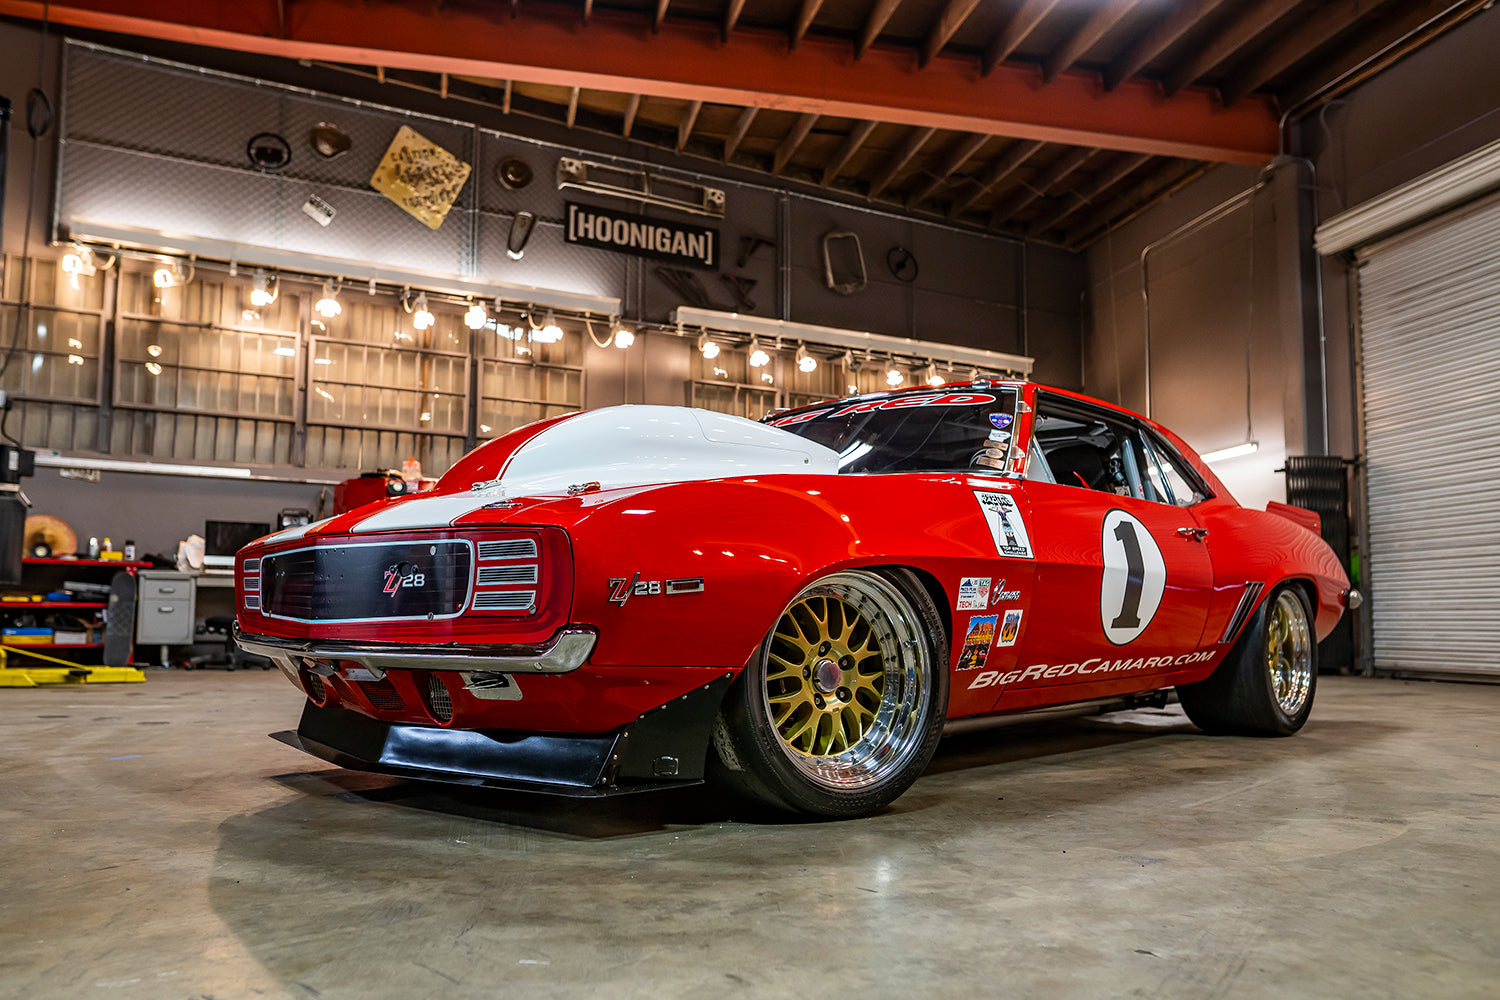 Pro Touring Camaro >> 2000hp 251mph Big Red 1969 Camaro The Greatest Pro Touring Car Ever